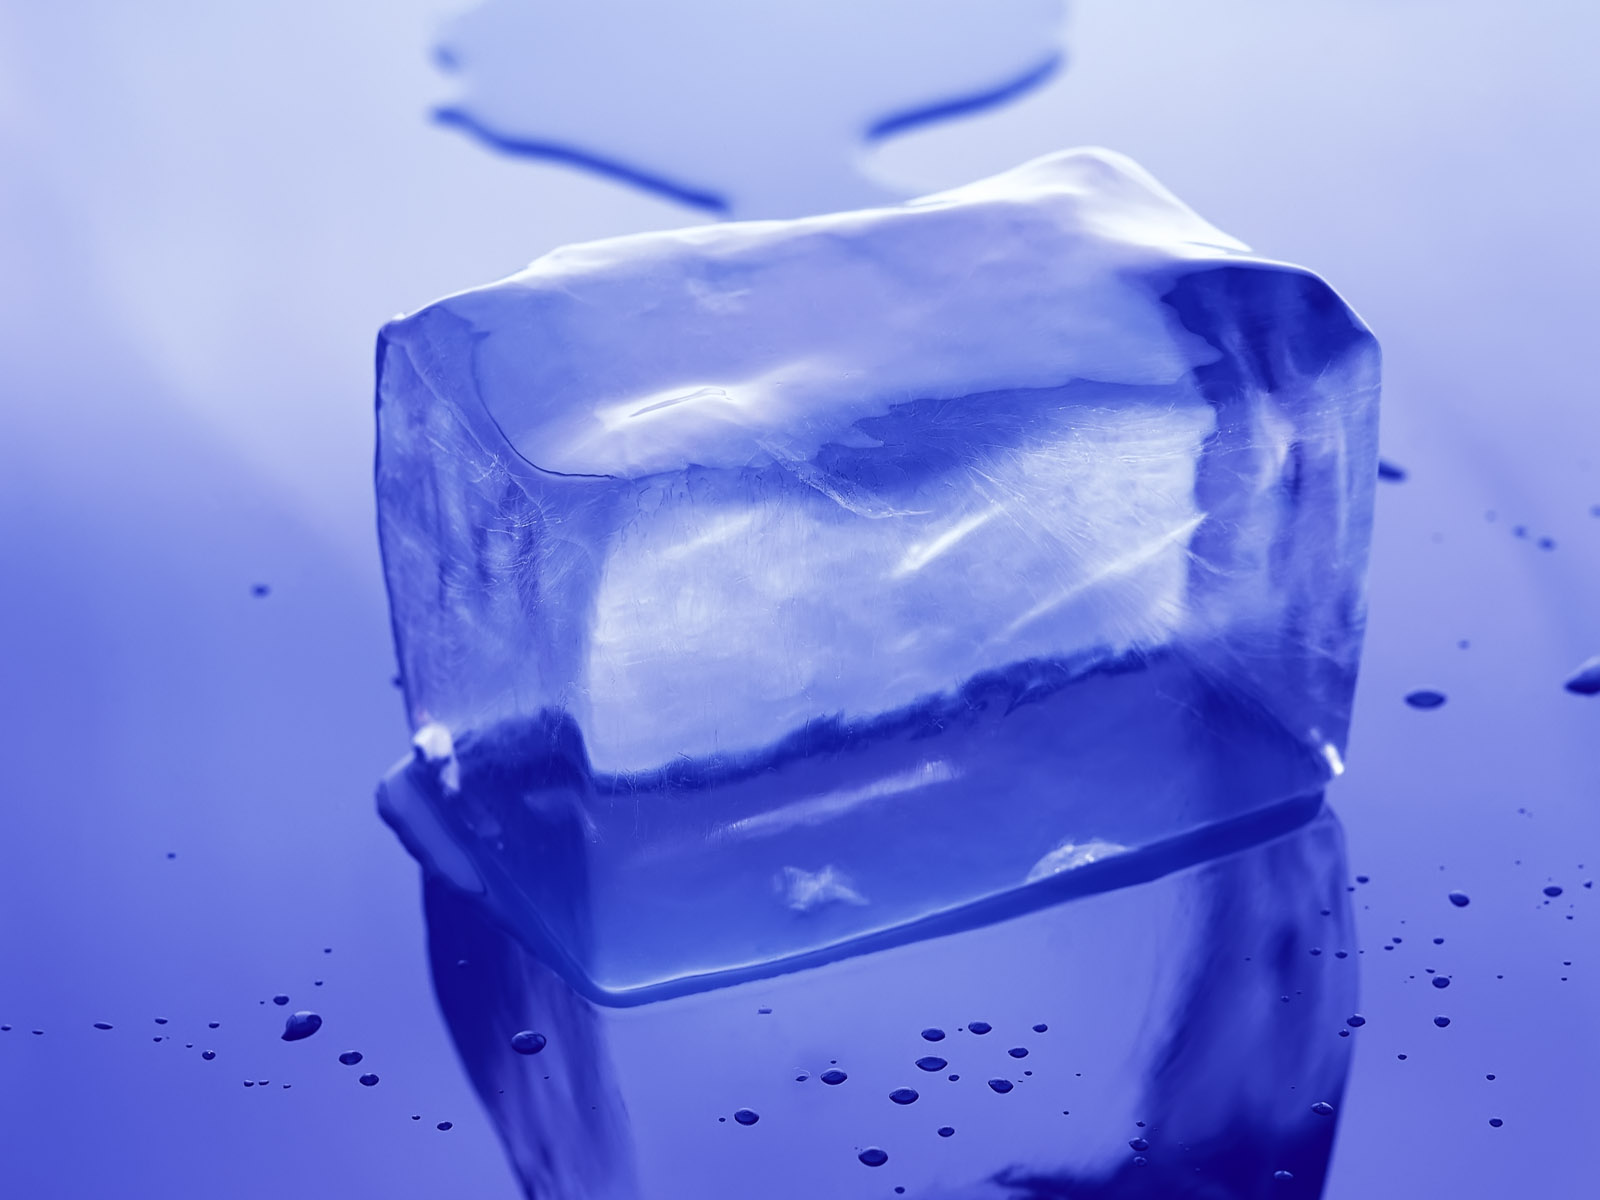 Ice Cube wallpapers | Ice Cube stock photos Ice Cube Wallpaper Iphone